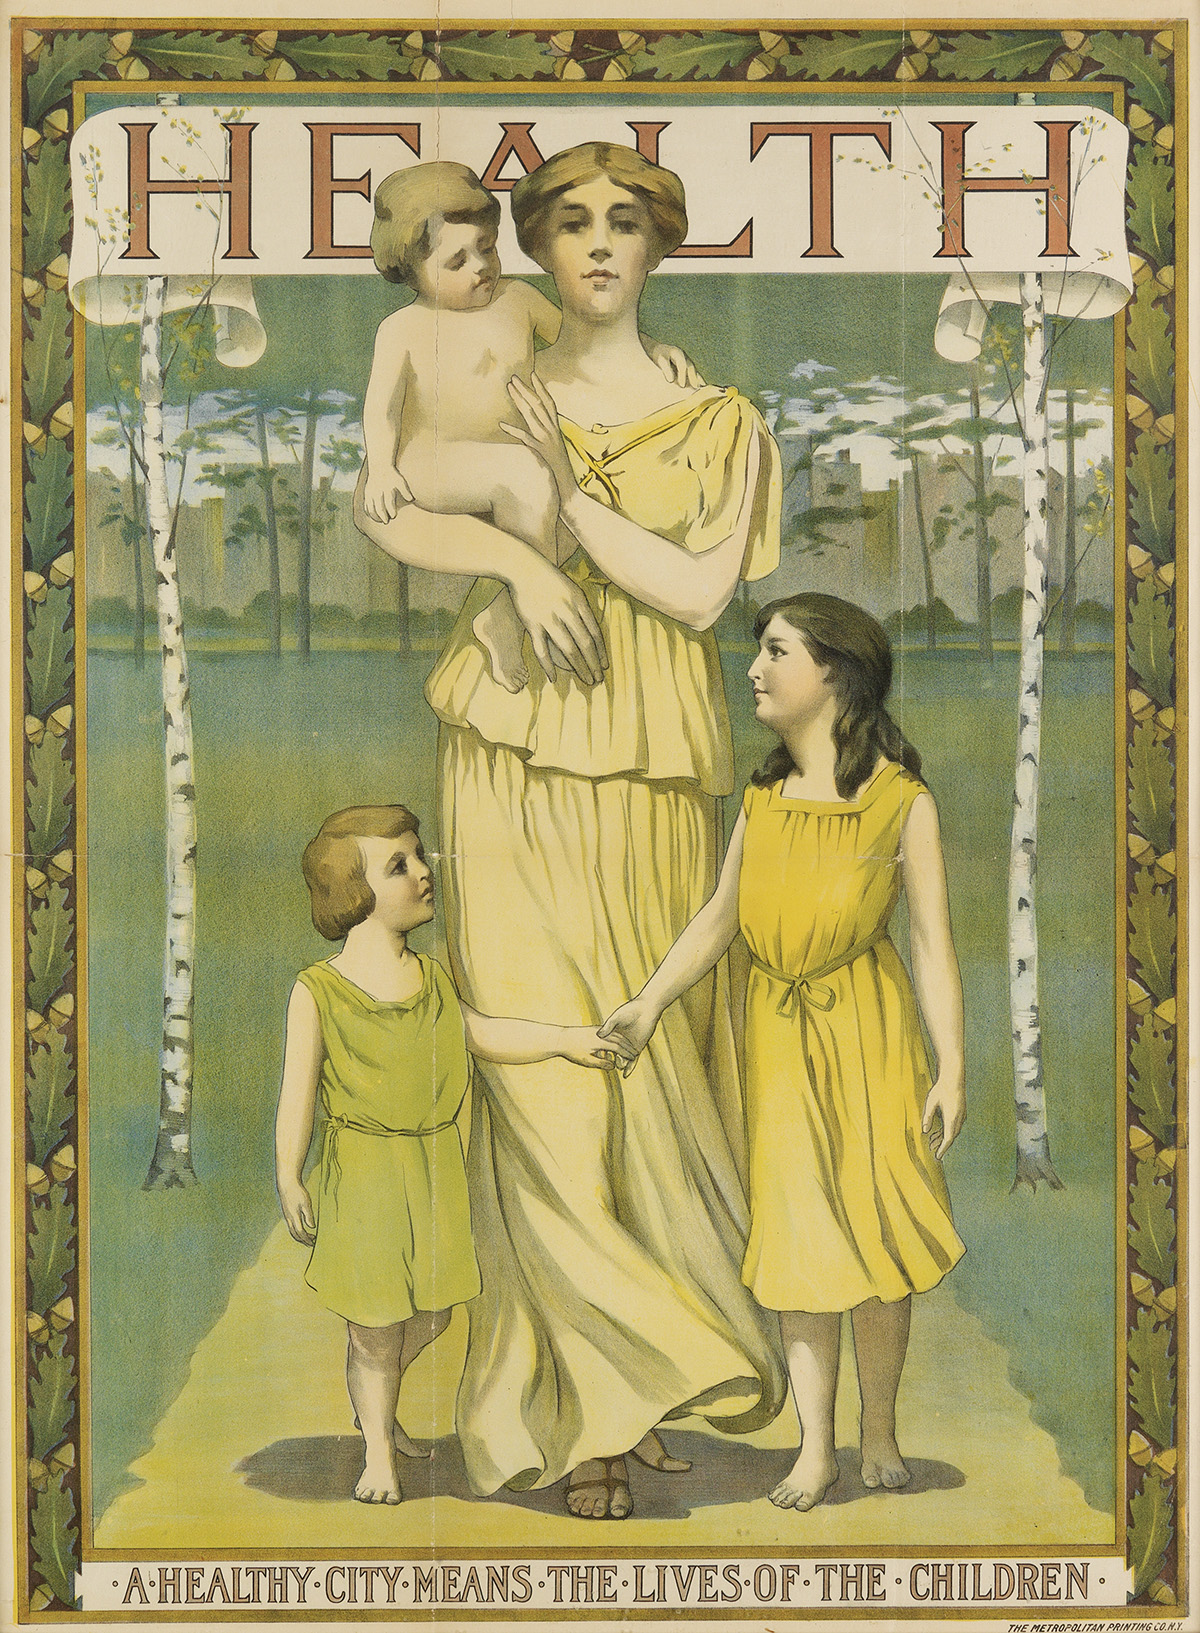 illustrational poster of a mother walking with her two young children while holding a baby